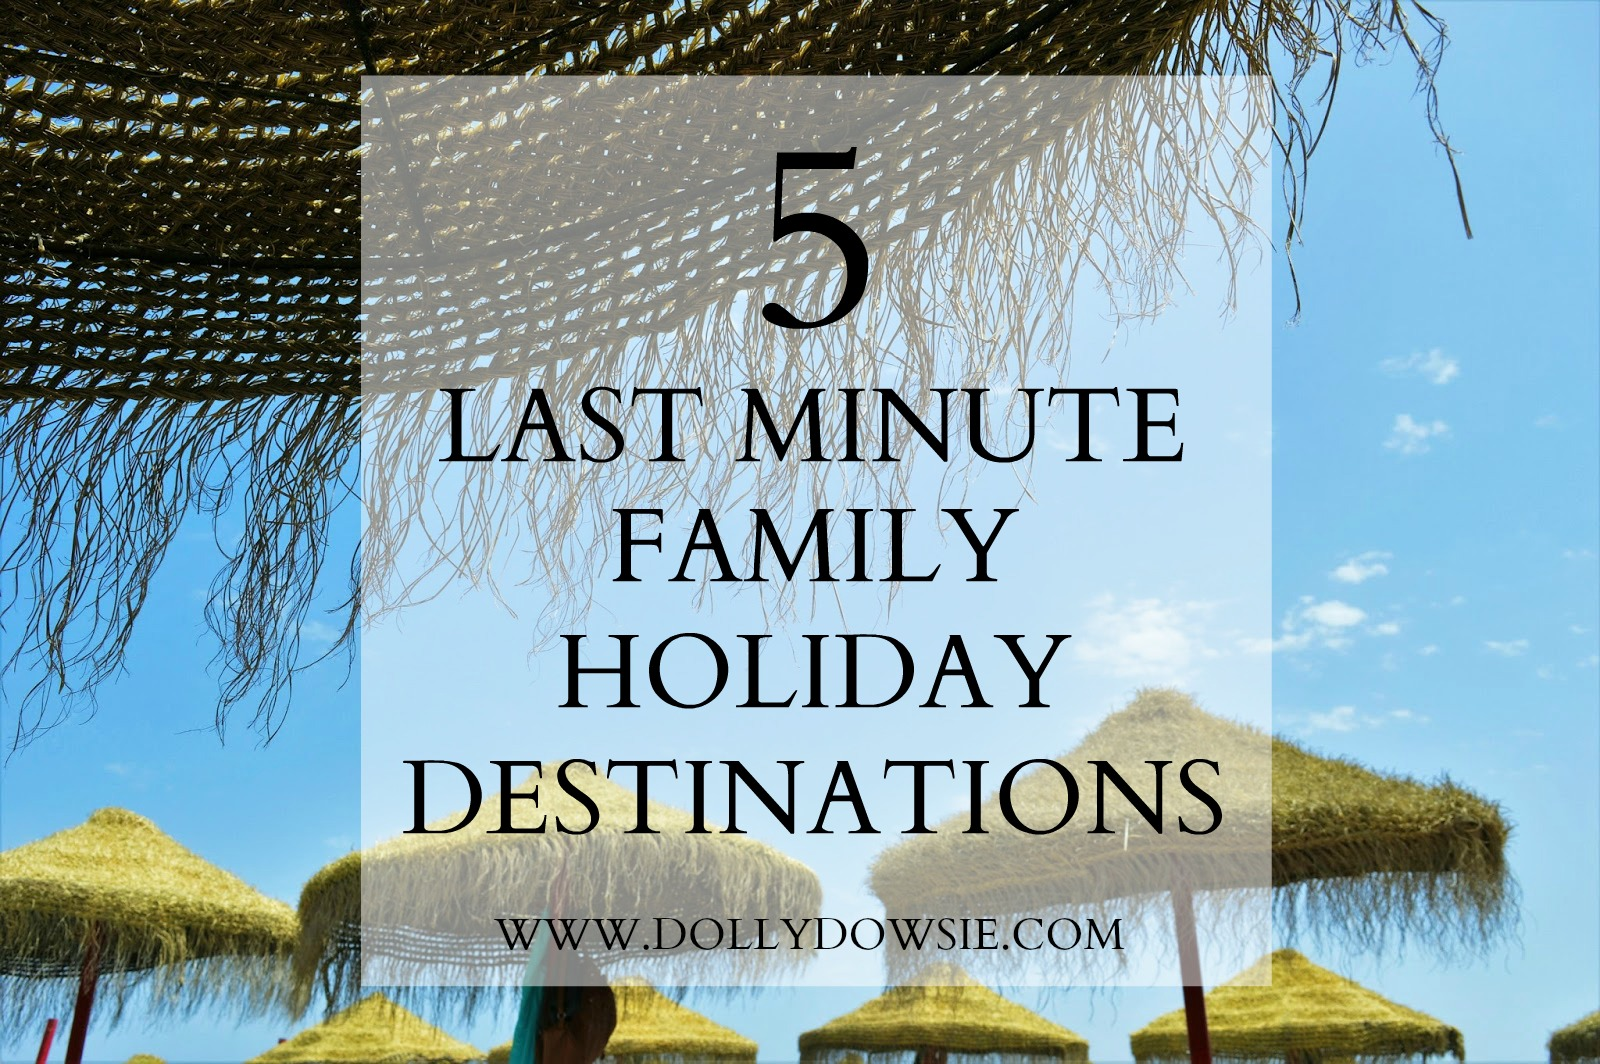 5 Last Minute Family Holiday Destination Ideas   Dolly